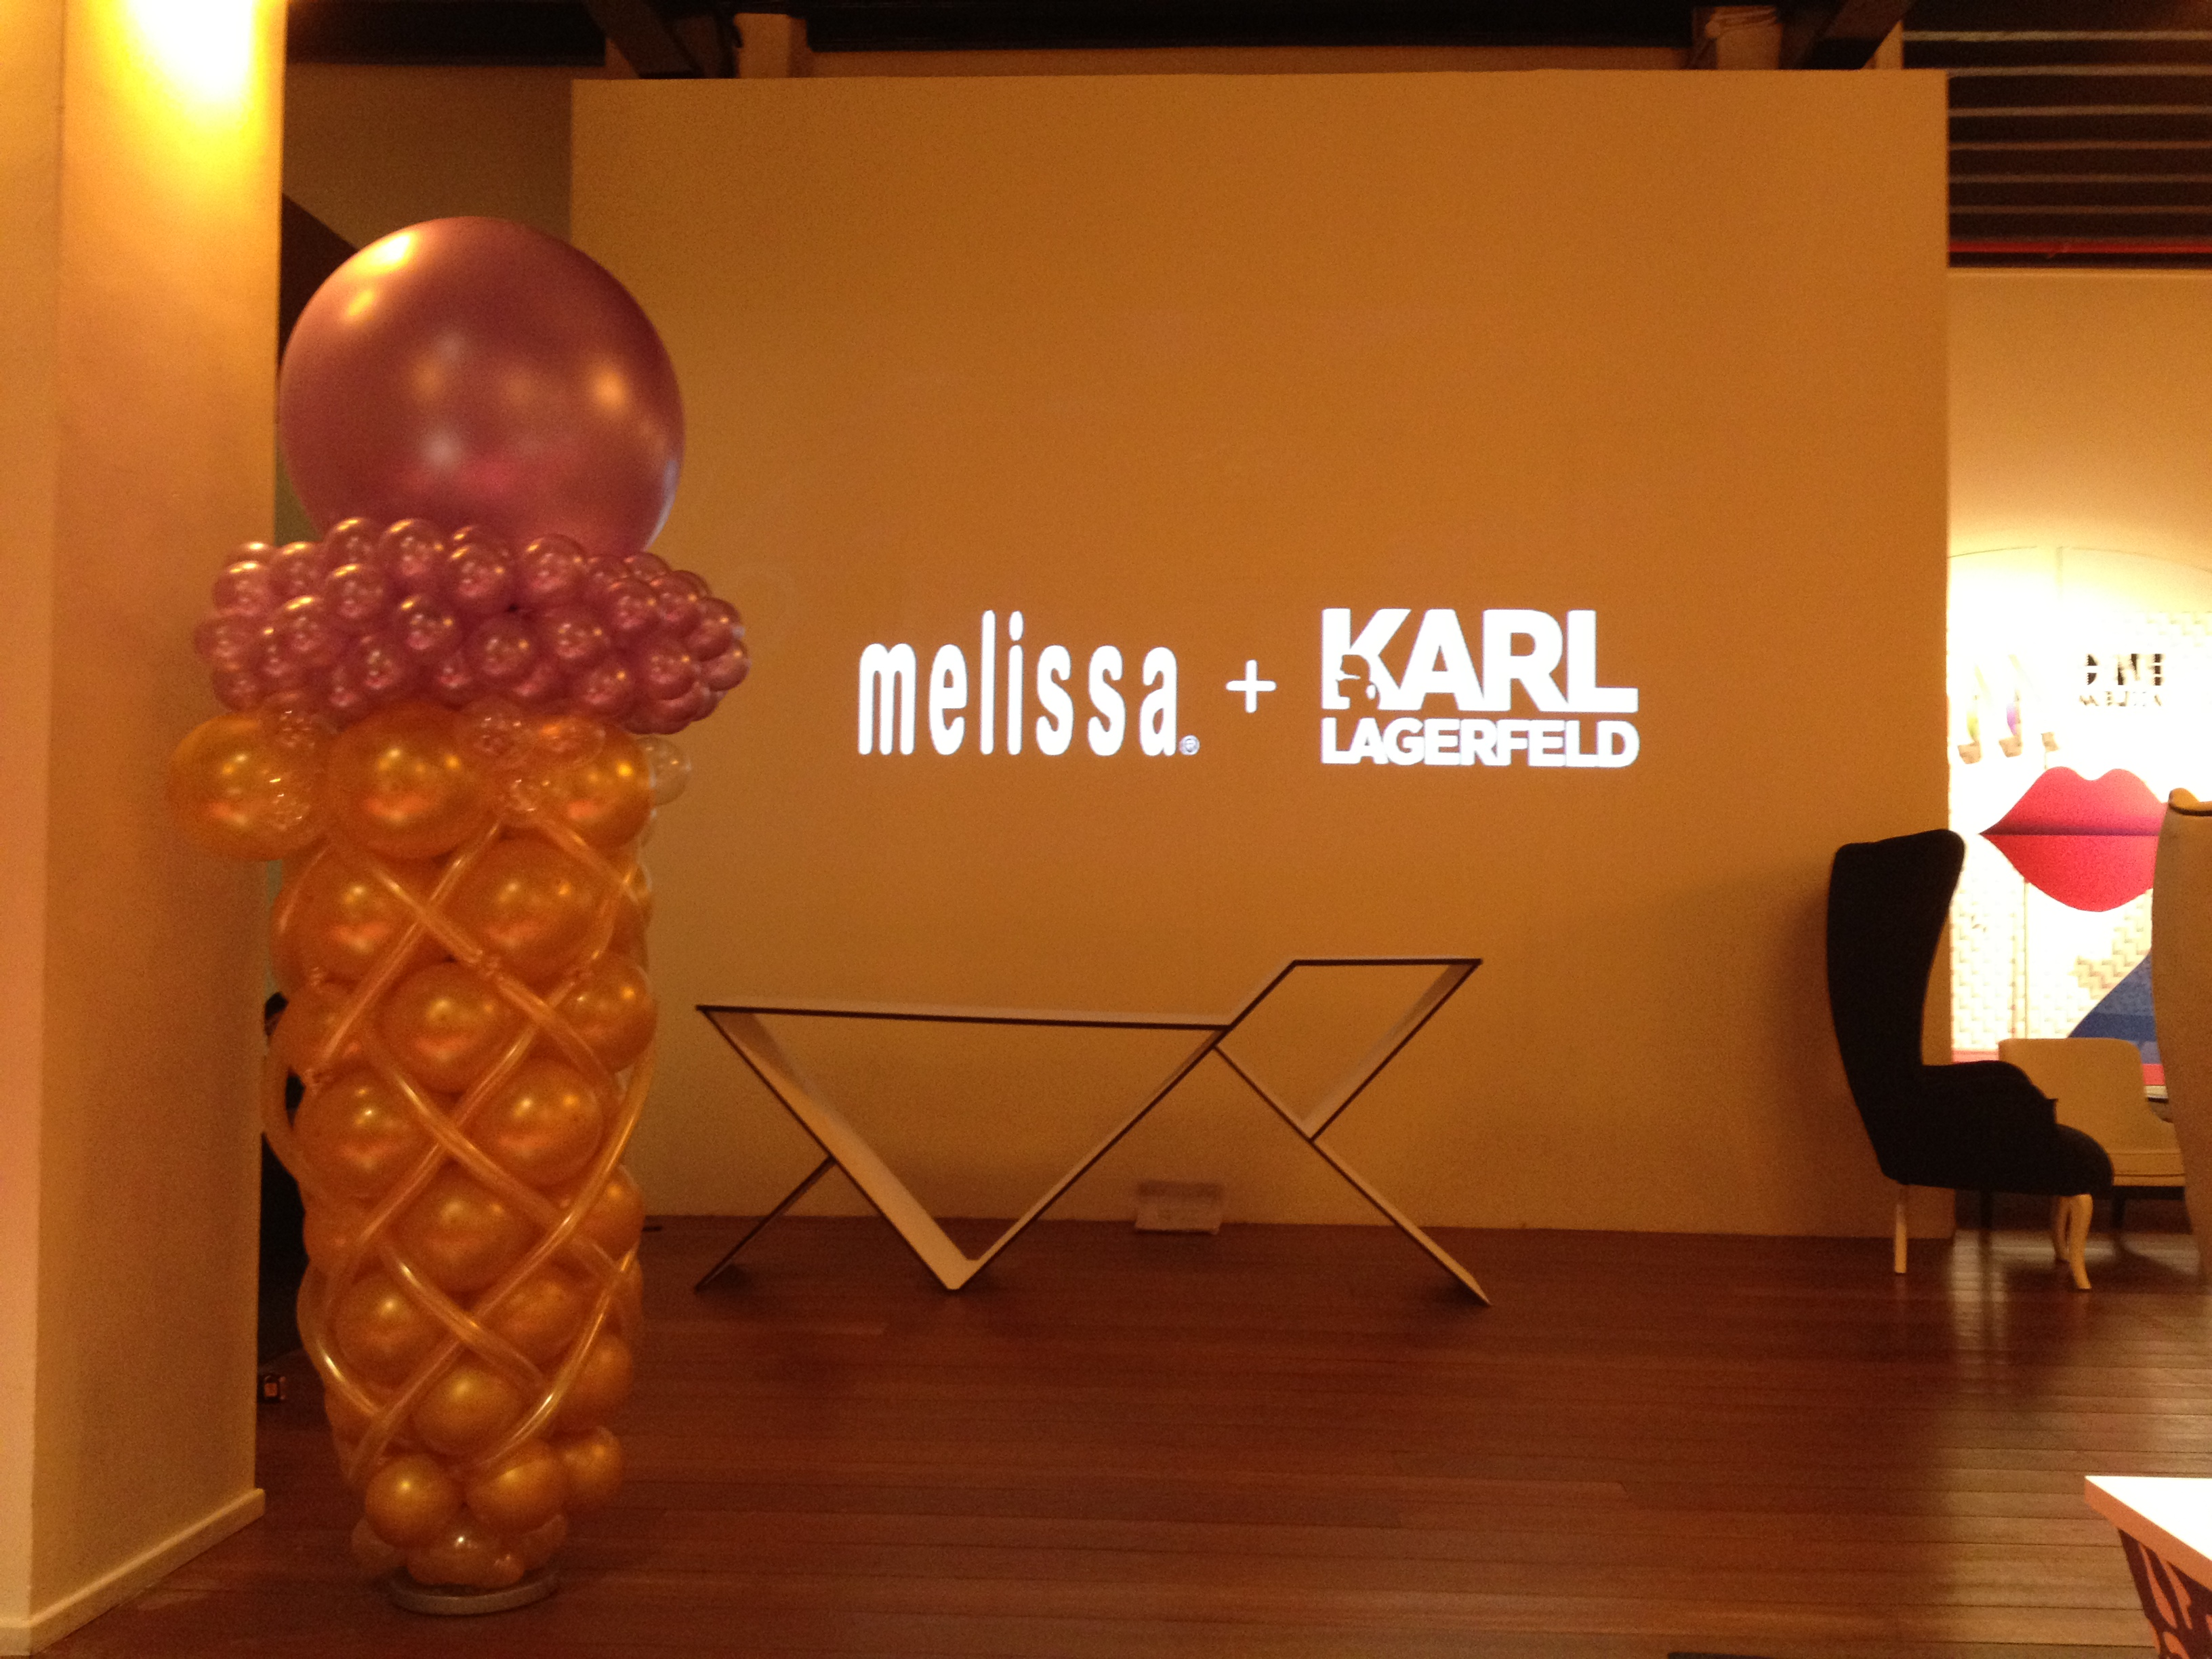 Customised Balloon for Karl Lagerfeld